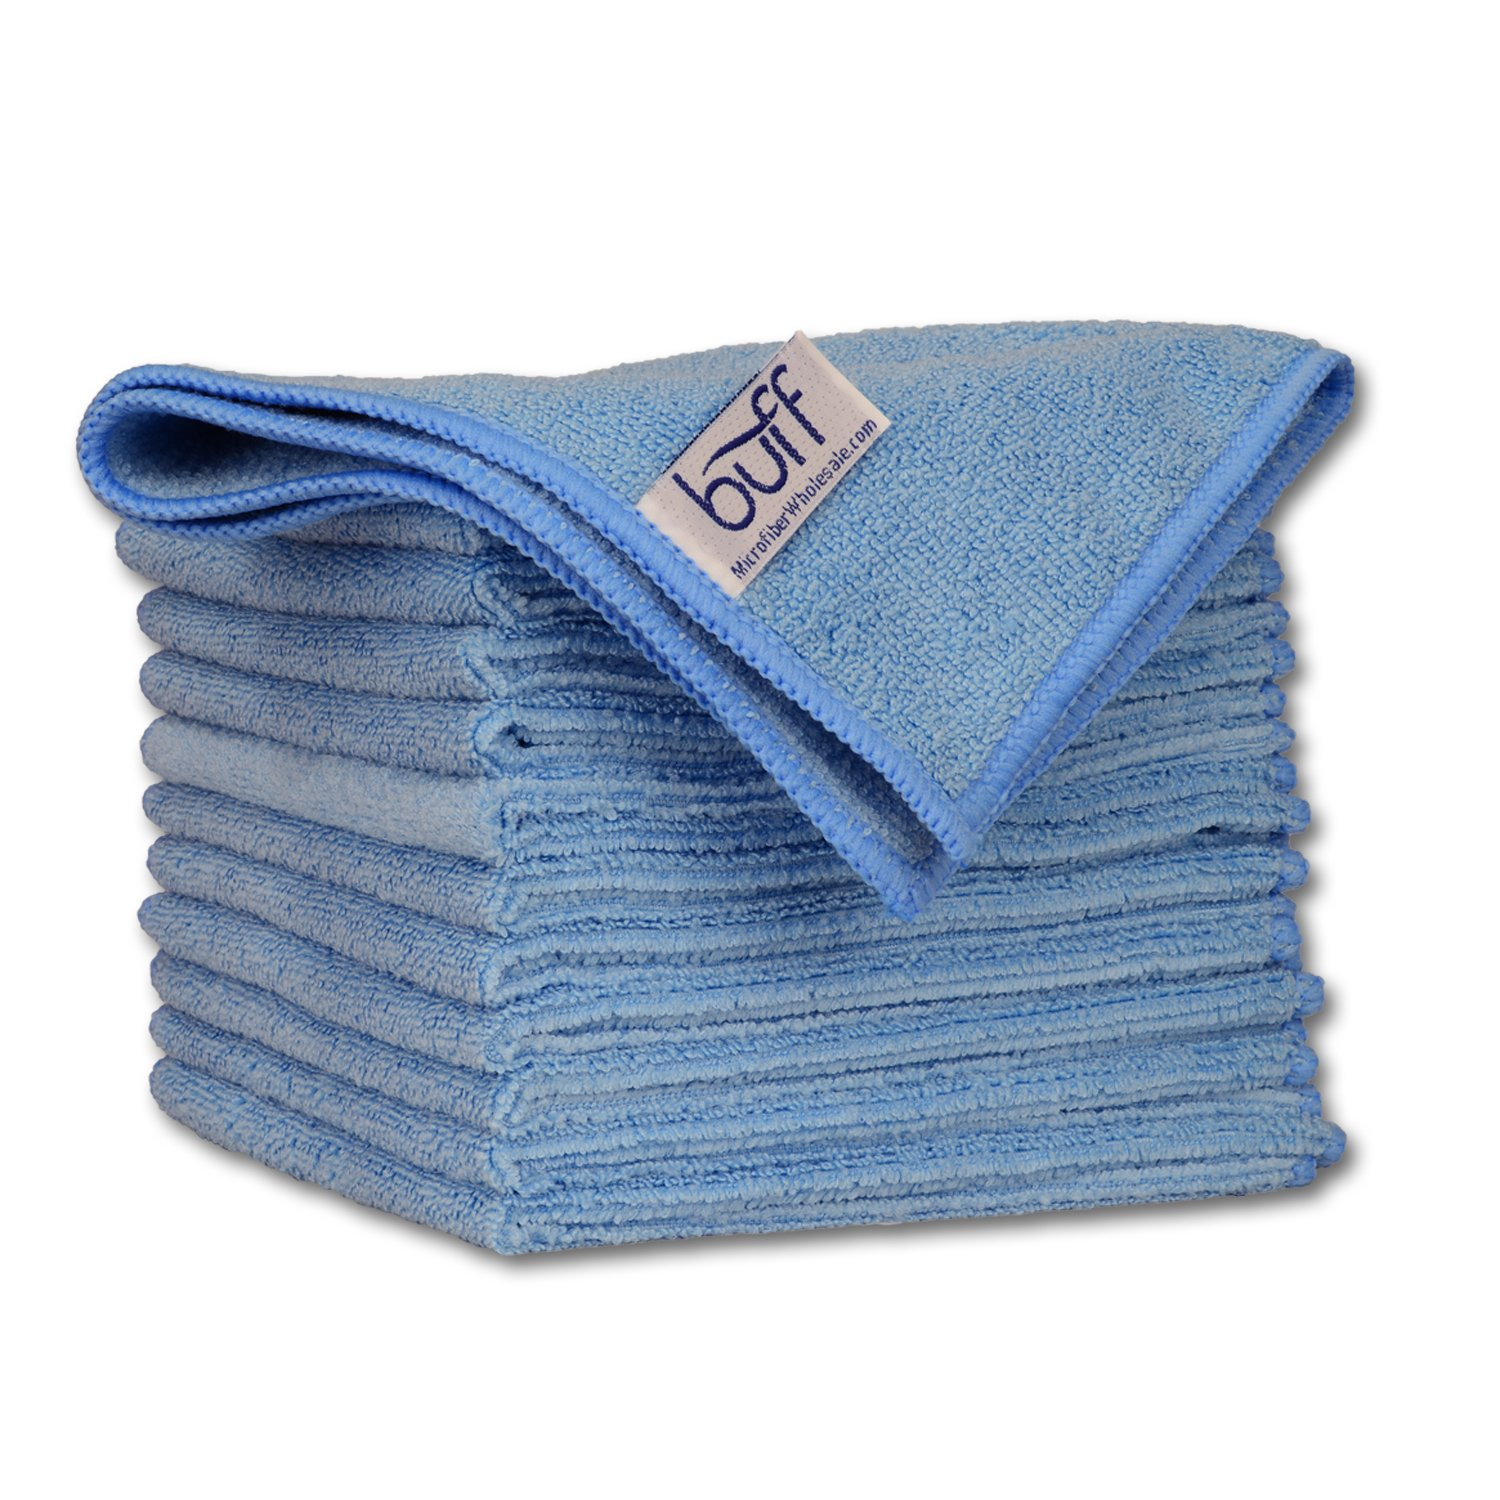 Amazon.com: Buff Pro Multi-Surface Microfiber Towel – 12 Pack ...